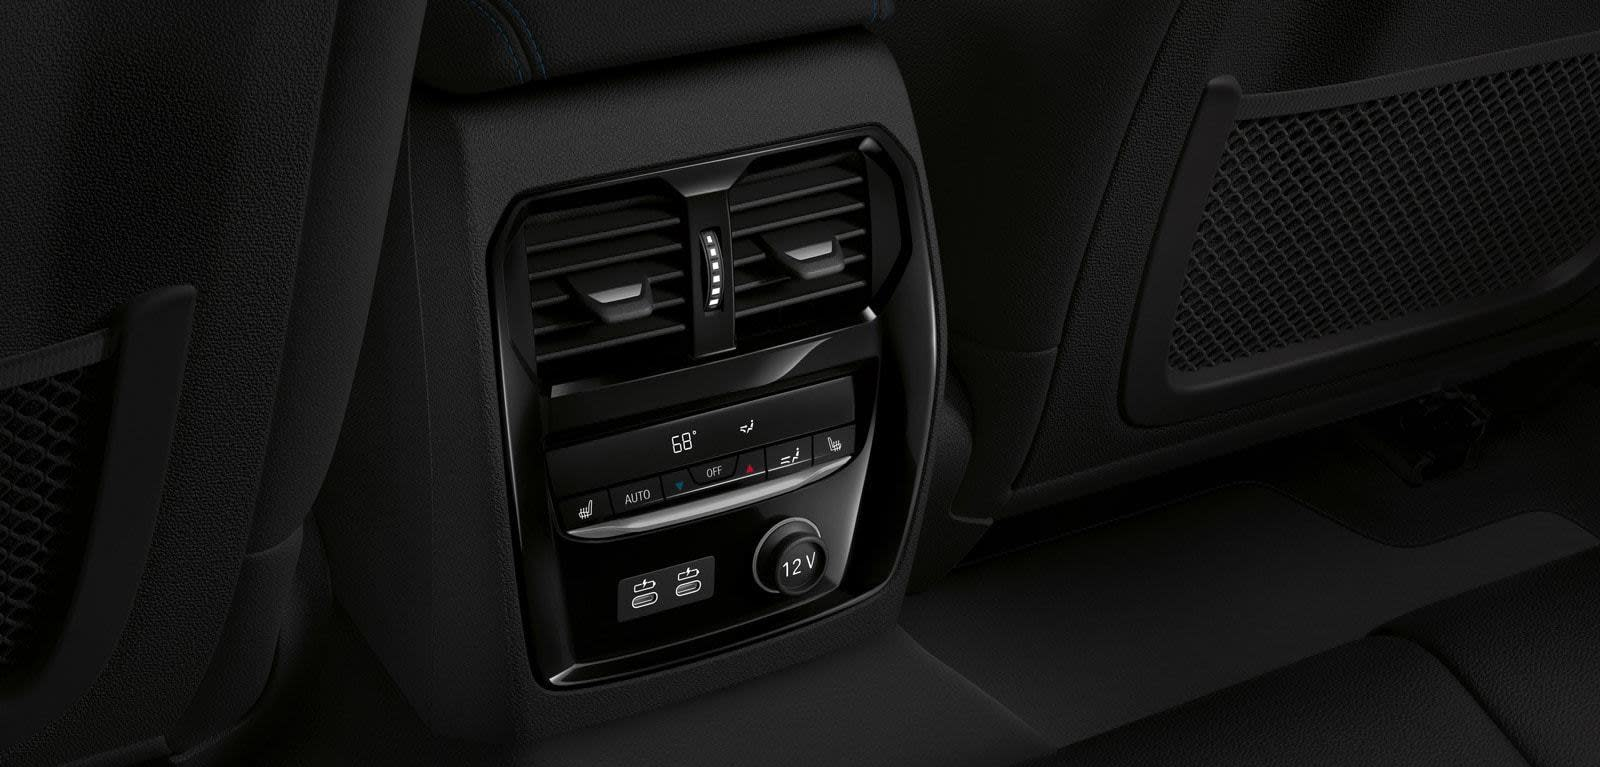 3-Zone Climate Control in the 2020 BMW 3 Series